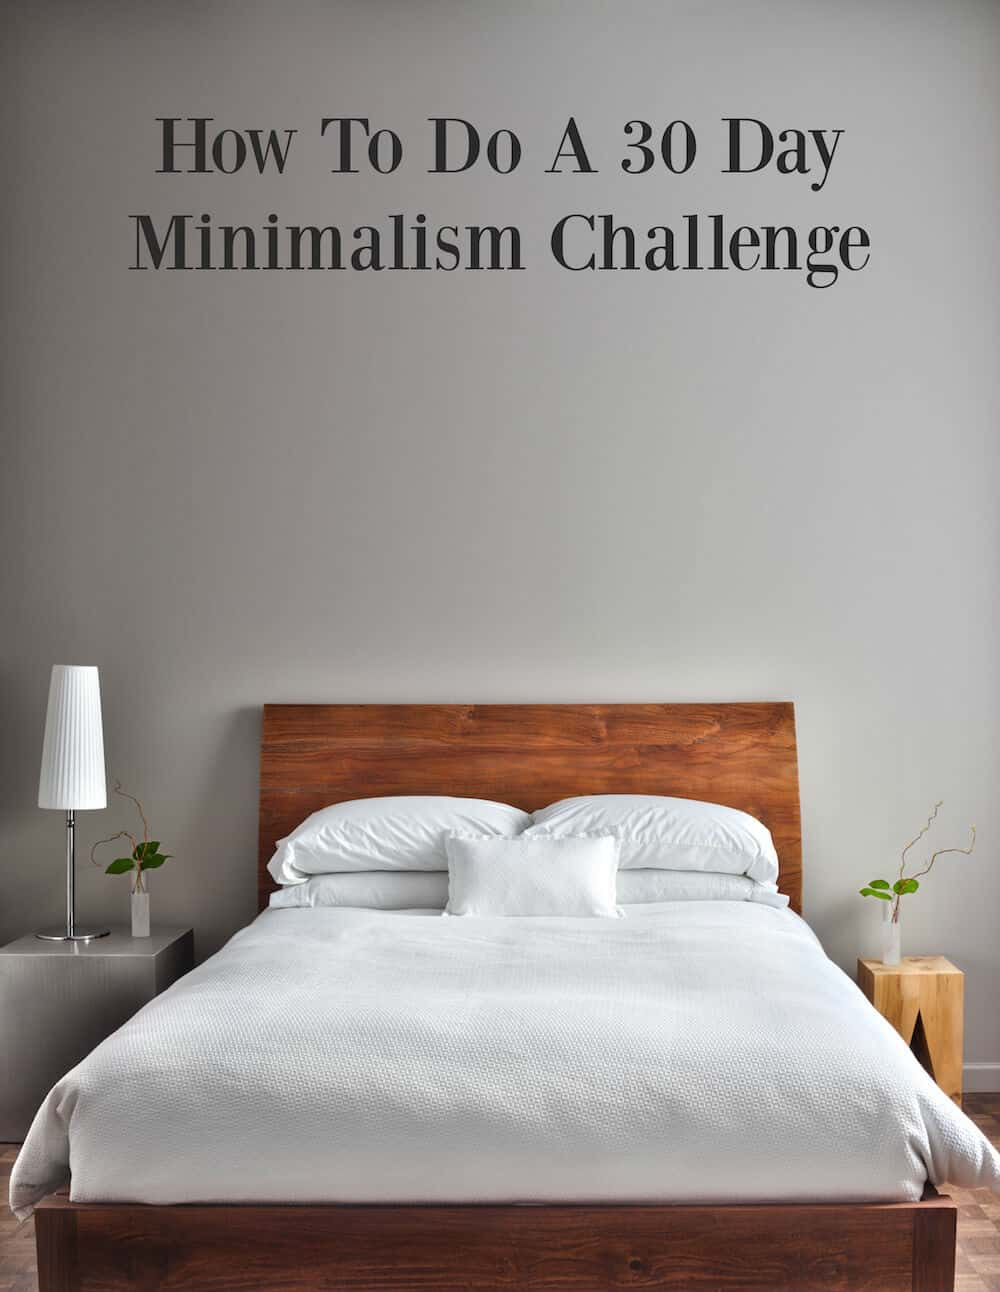 Are you interested in minimalist living? Try it for 30-days. You don't have to get rid of all of your possessions to participate, and it helps with clutter!